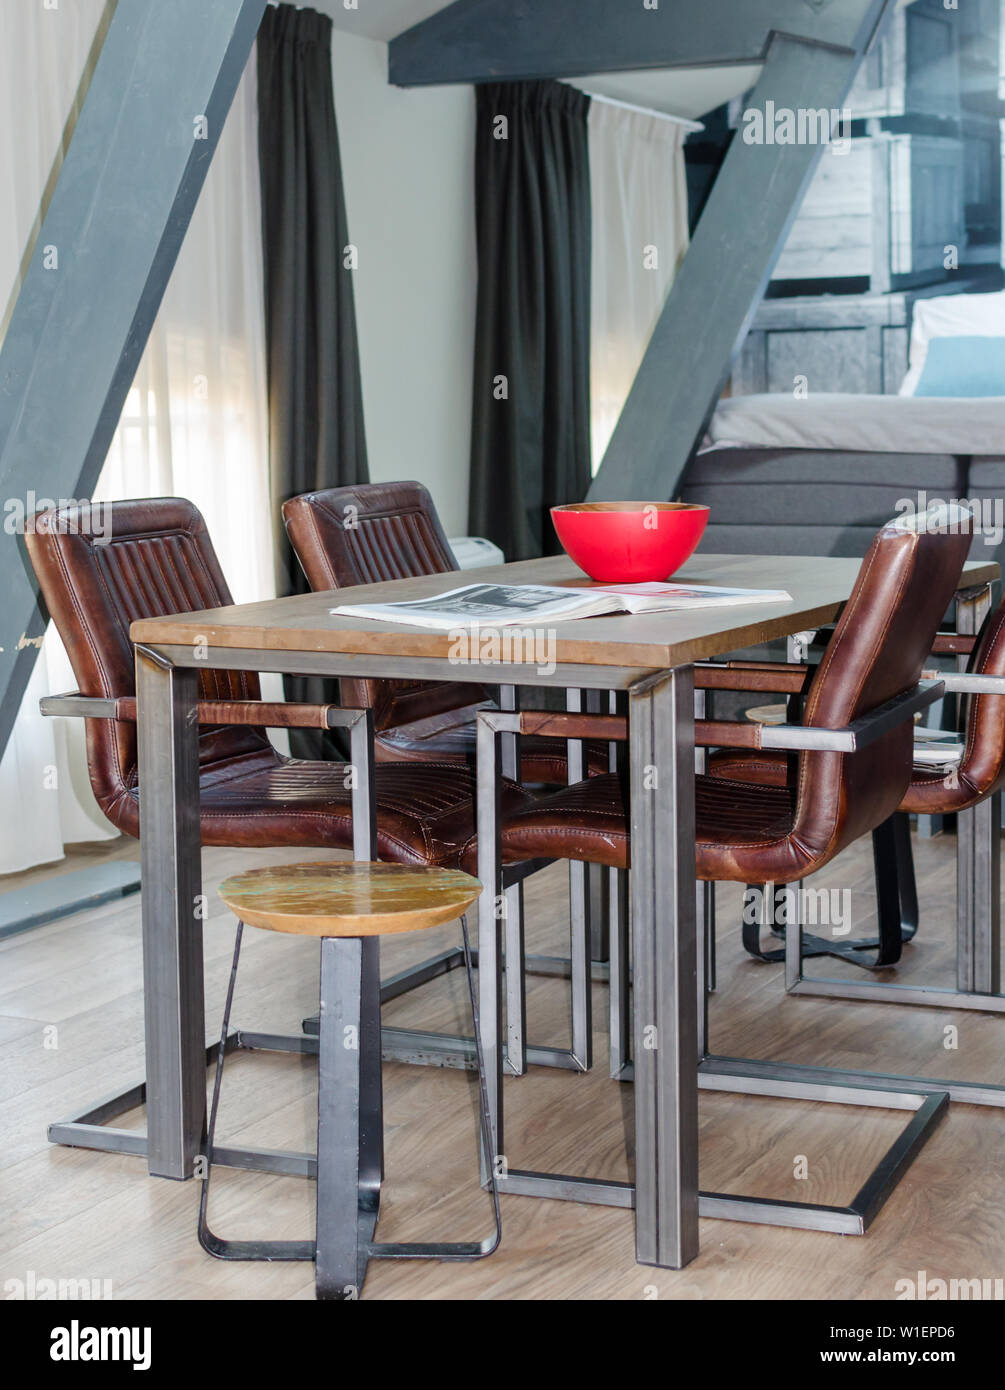 Amsterdam Netherlands May 2019 Wood And Metal Dining Table With Cozy Leather Chairs Wooden Floor In A Mansard Room With A Rented Apartment Stock Photo Alamy